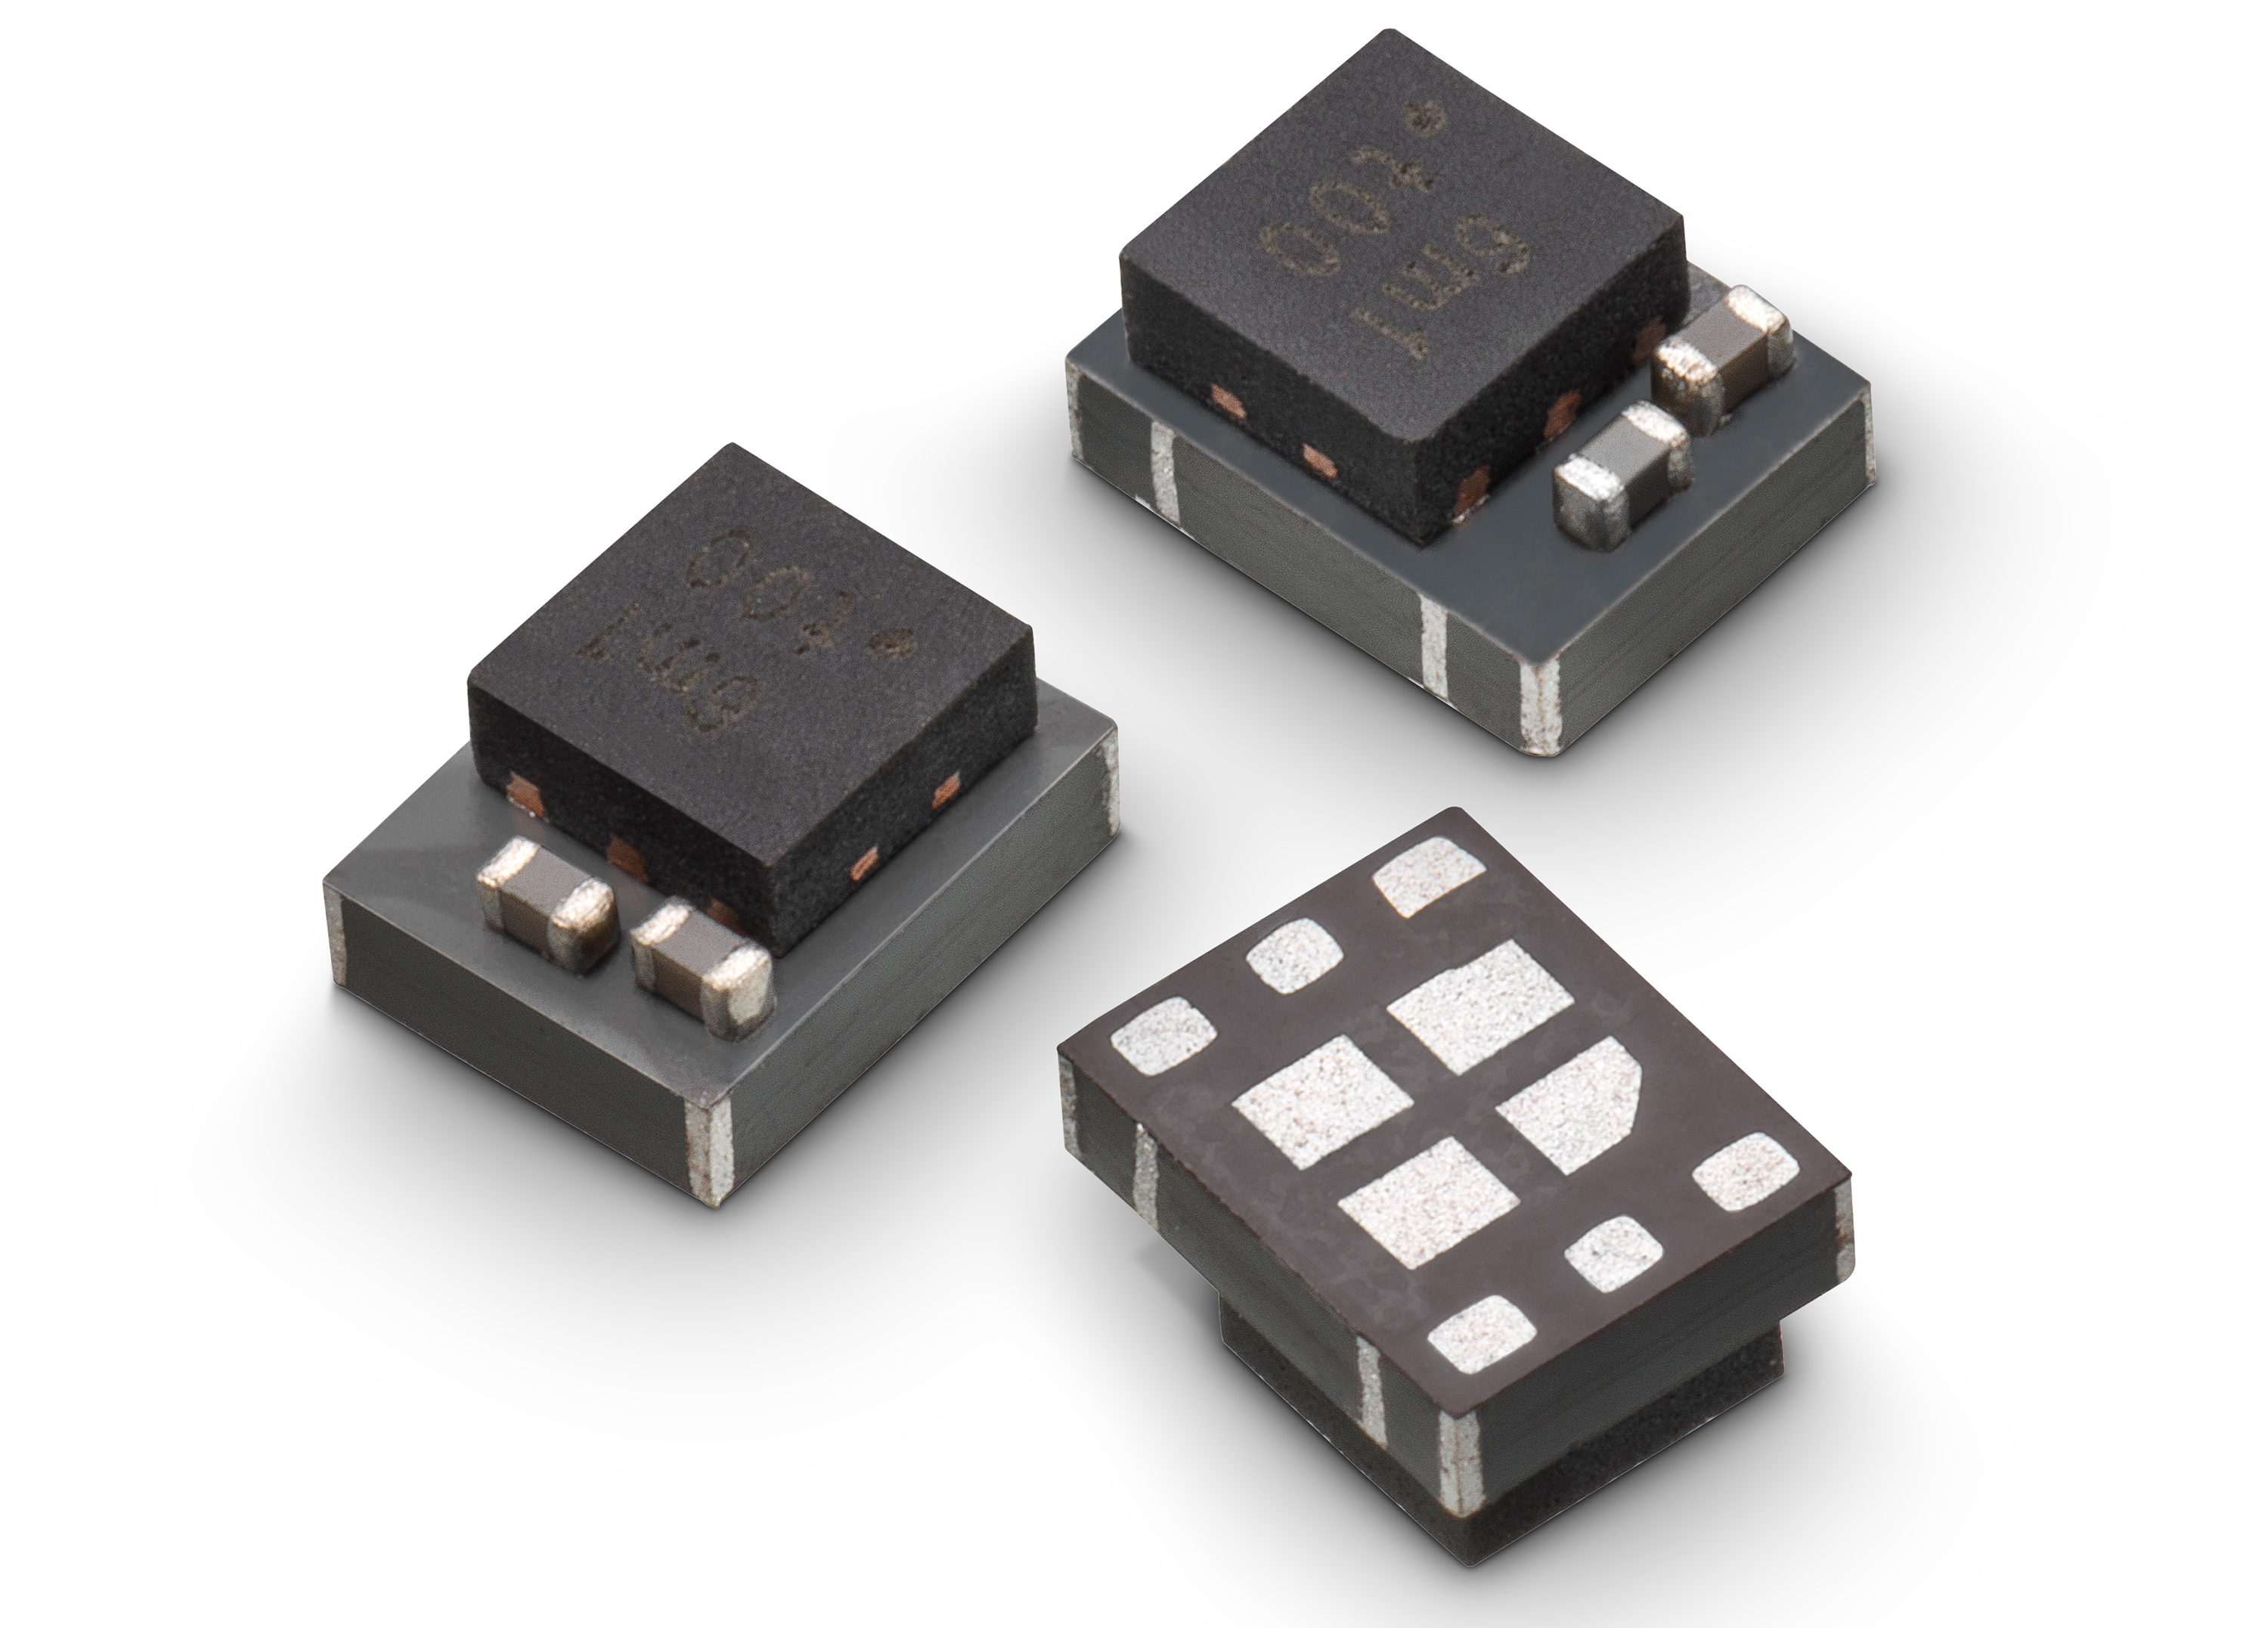 Würth Elektronik eiSos expands its MagI³C series of power module